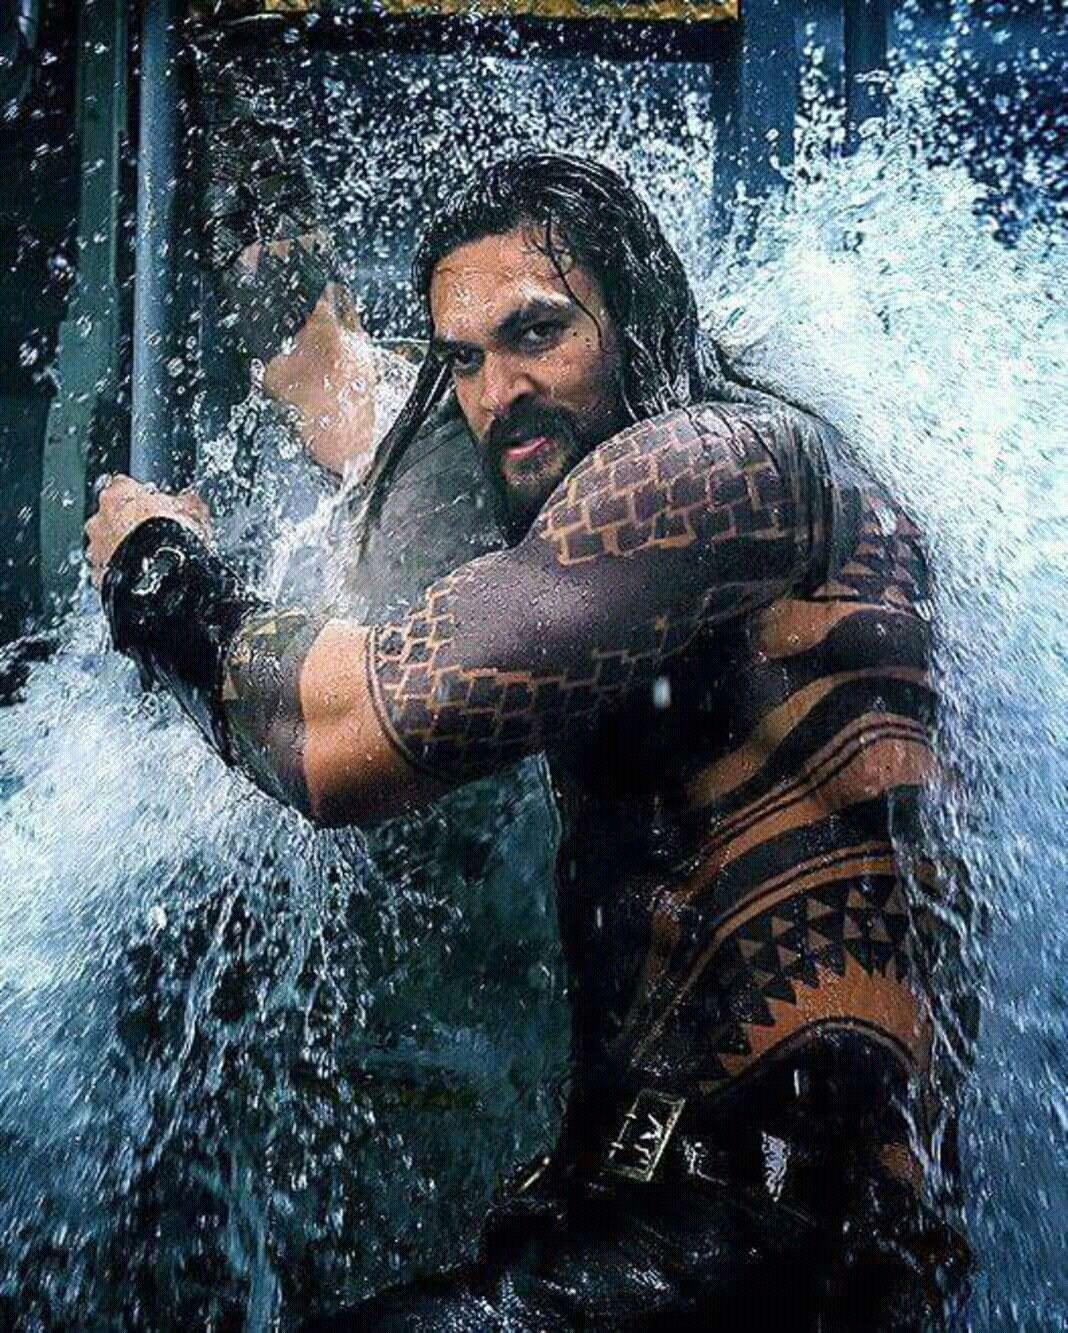 Jason Mamoa I Have No Words Jason Momoa Aquaman Aquaman Film Aquaman Movie 2018